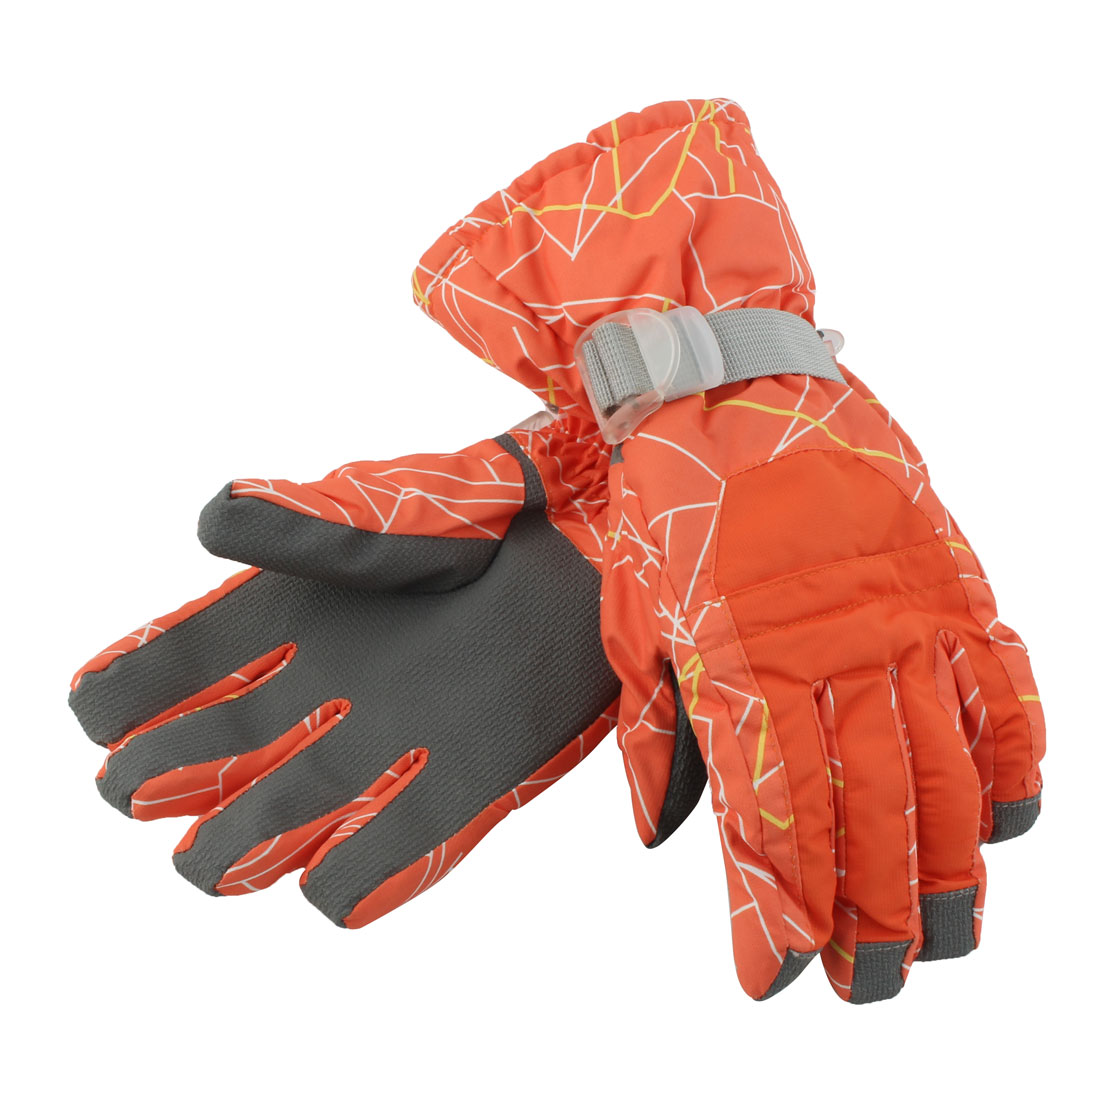 Outdoor Cycling Biking Snowmobile Snowboard Ski Gloves Athletic Mittens Orange S by